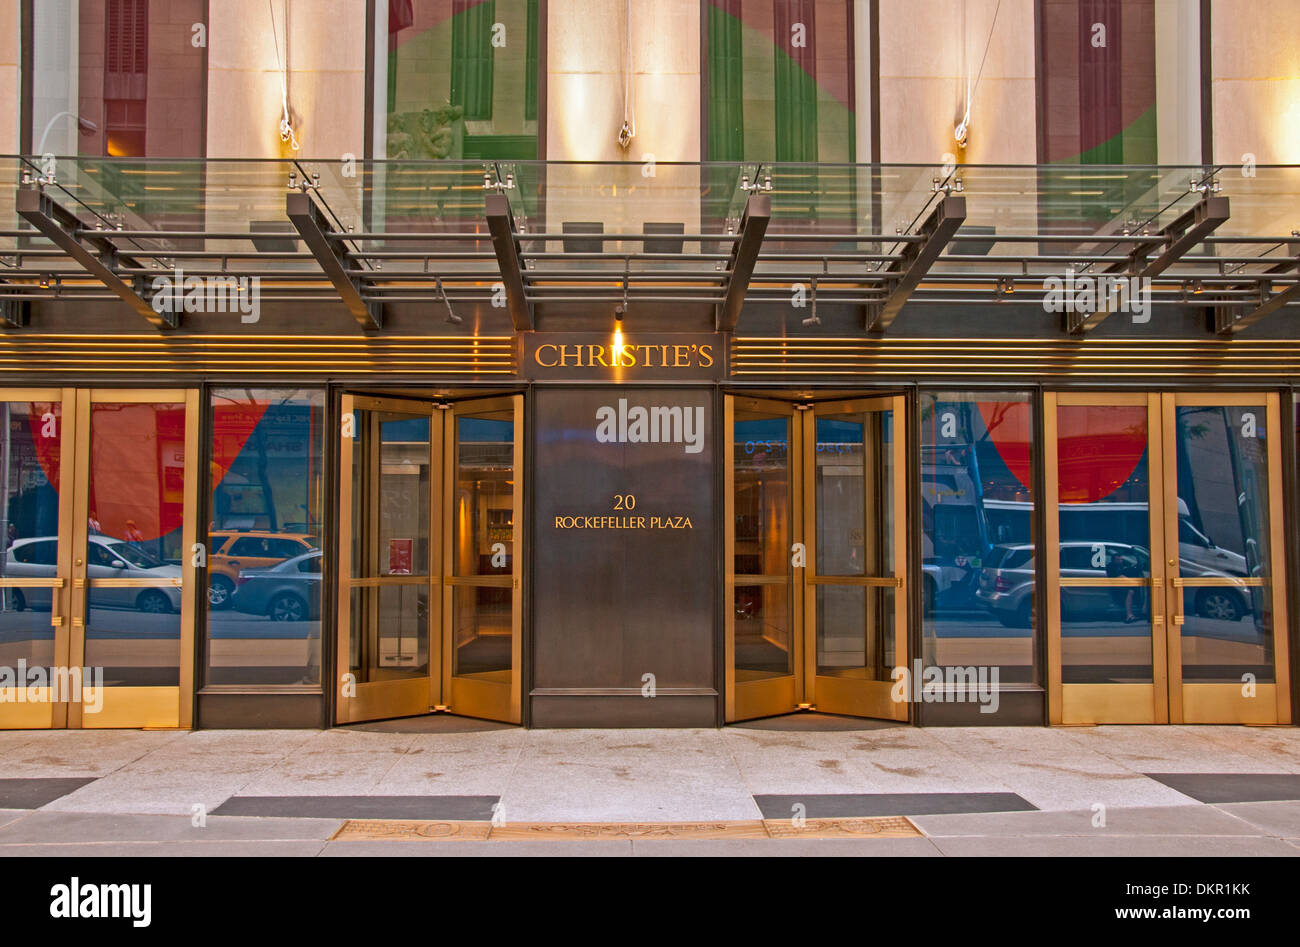 America auction auctioneers Christie Christies city entrance input area foyer front door Manhattan Midtown North America Plaza - Stock Image